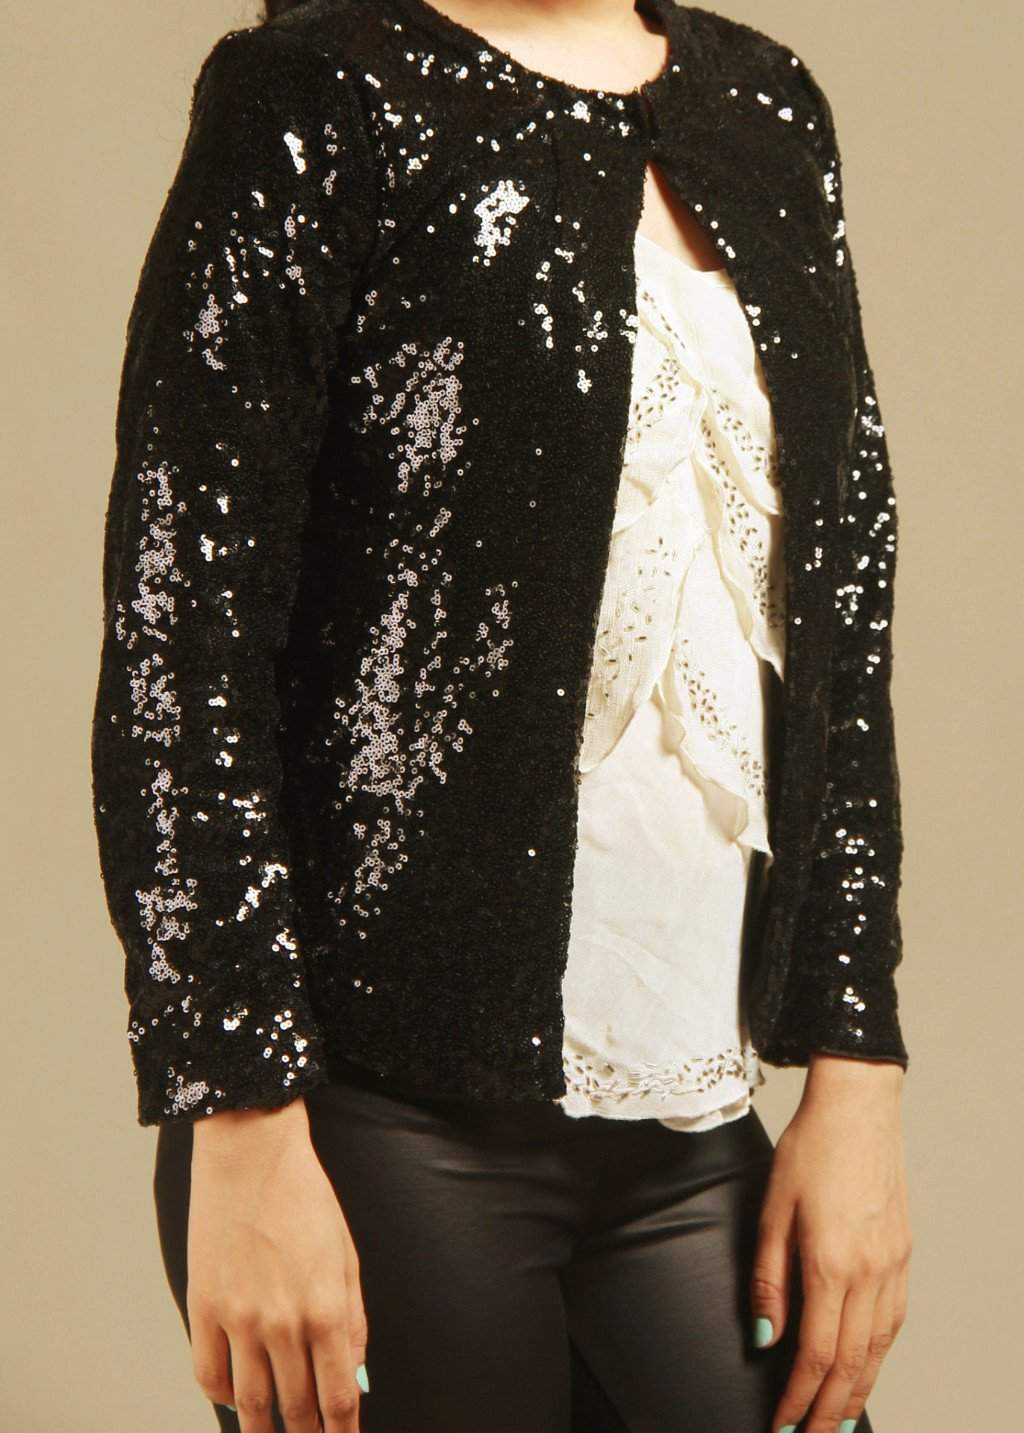 CLASSIC THREAD Get Into The Groove Black Sequins Jacket